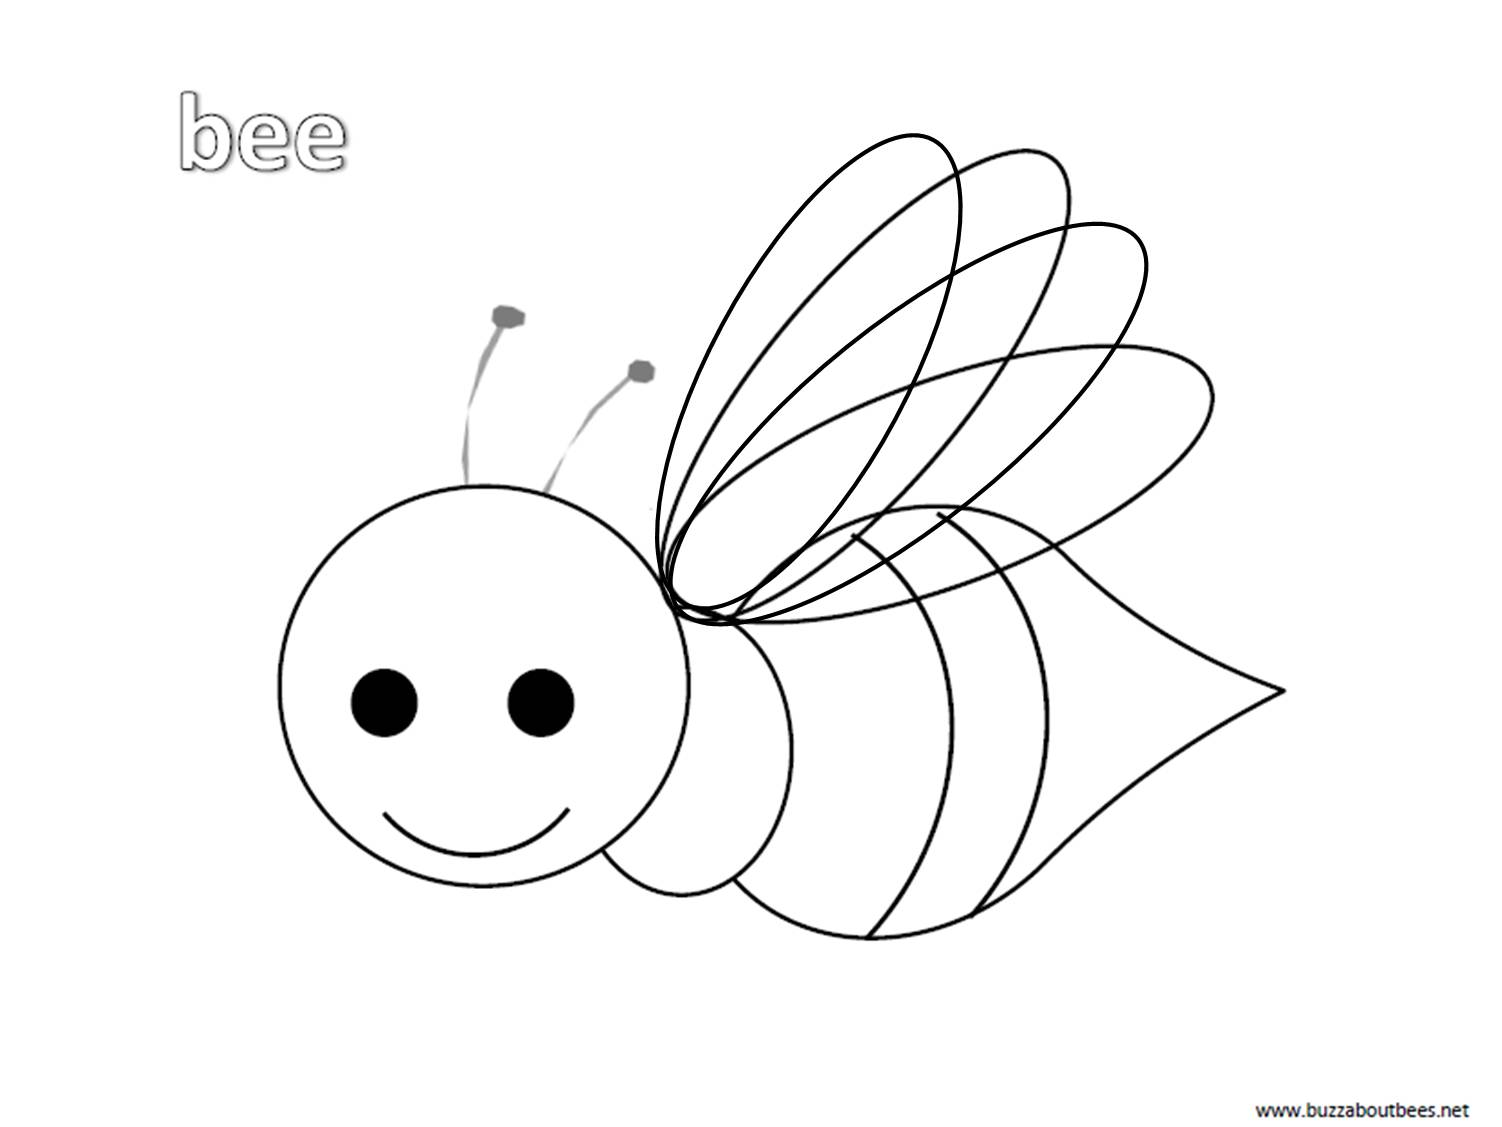 Bee Coloring Pages, Educational Activity Sheets And Puzzles Free